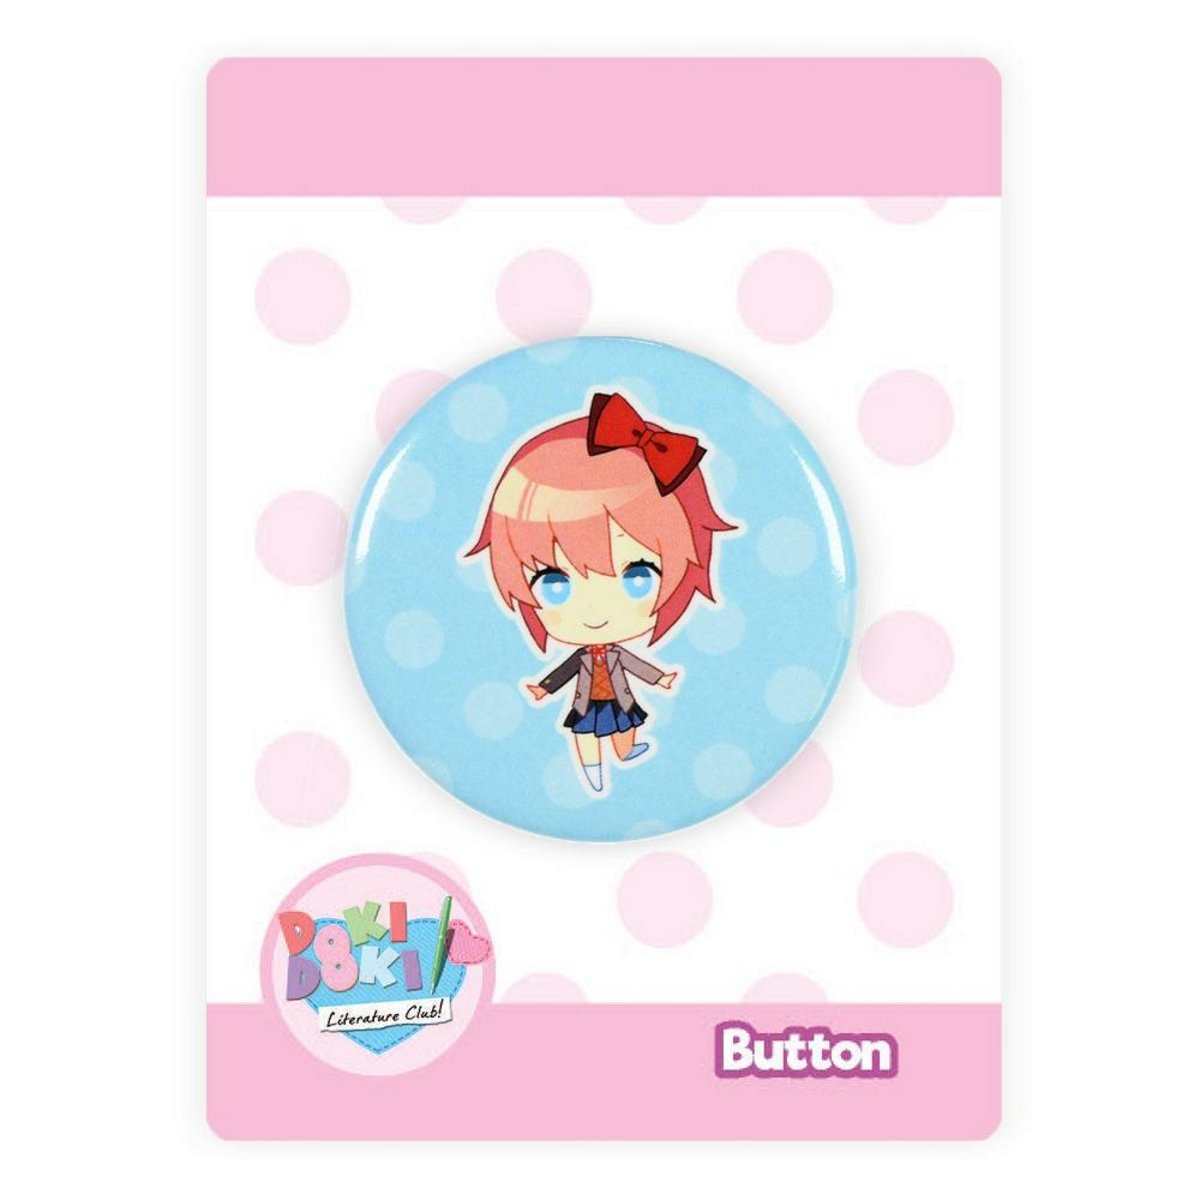 Sayori Button